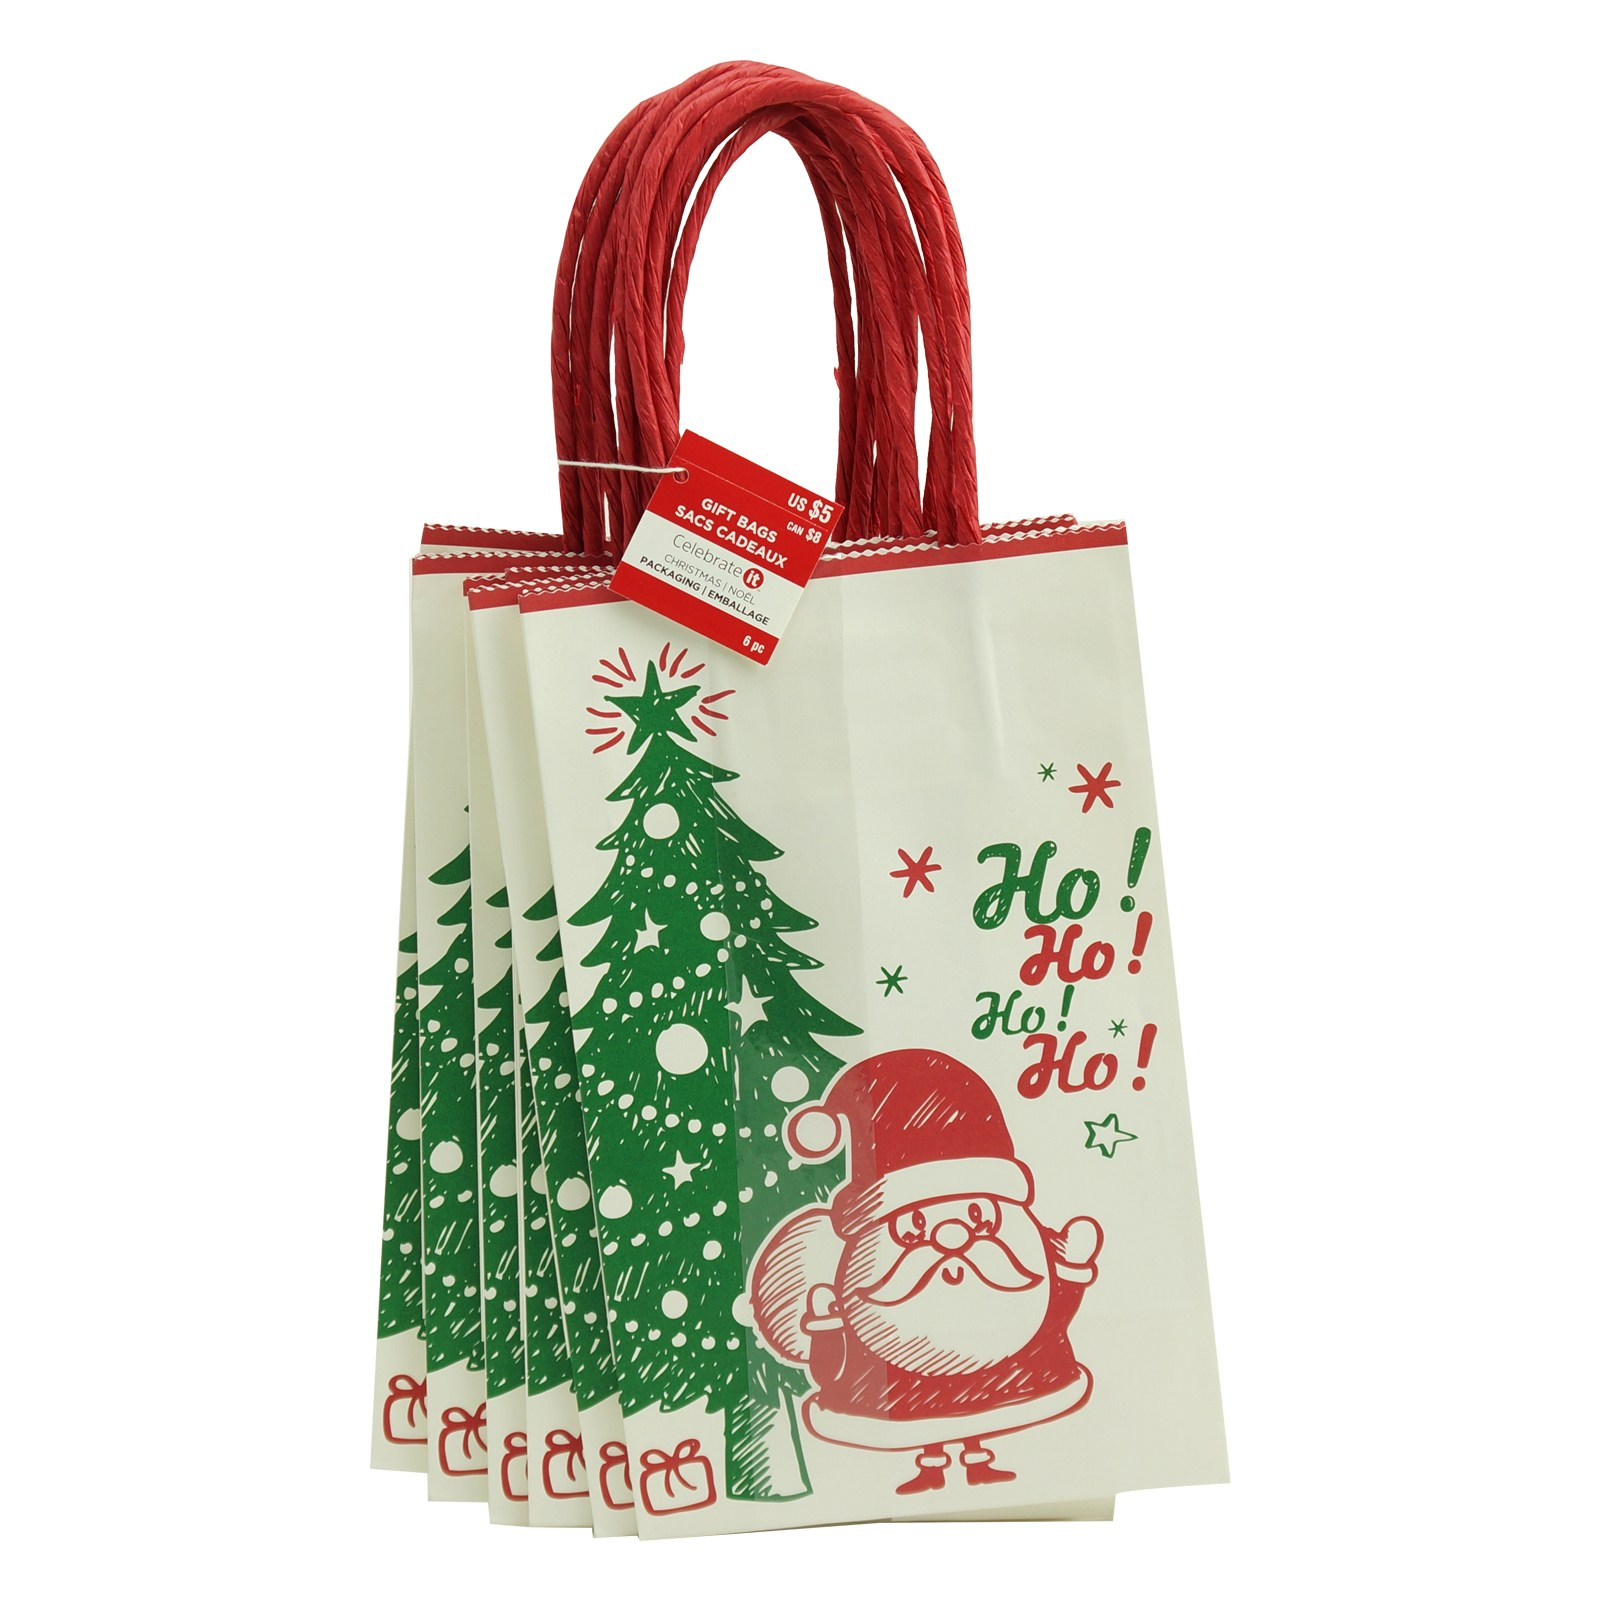 Shop for the Santa Ho Ho Ho Small Bags by Celebrate It™ at Michaels